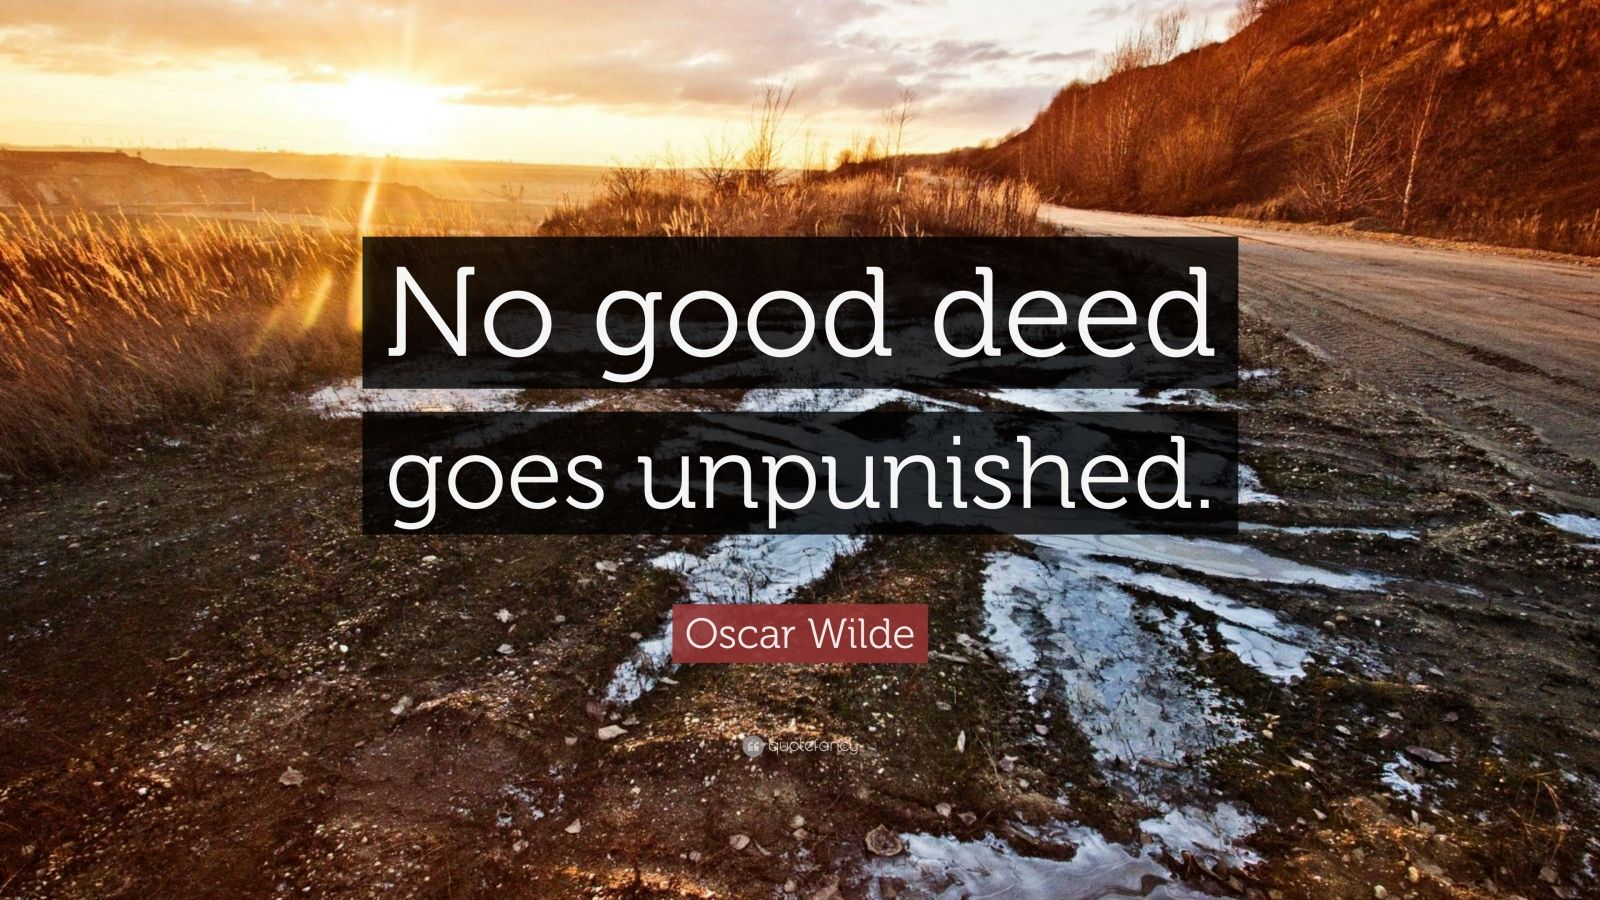 John Lennon Quotes Wallpaper Oscar Wilde Quote No Good Deed Goes Unpunished 18